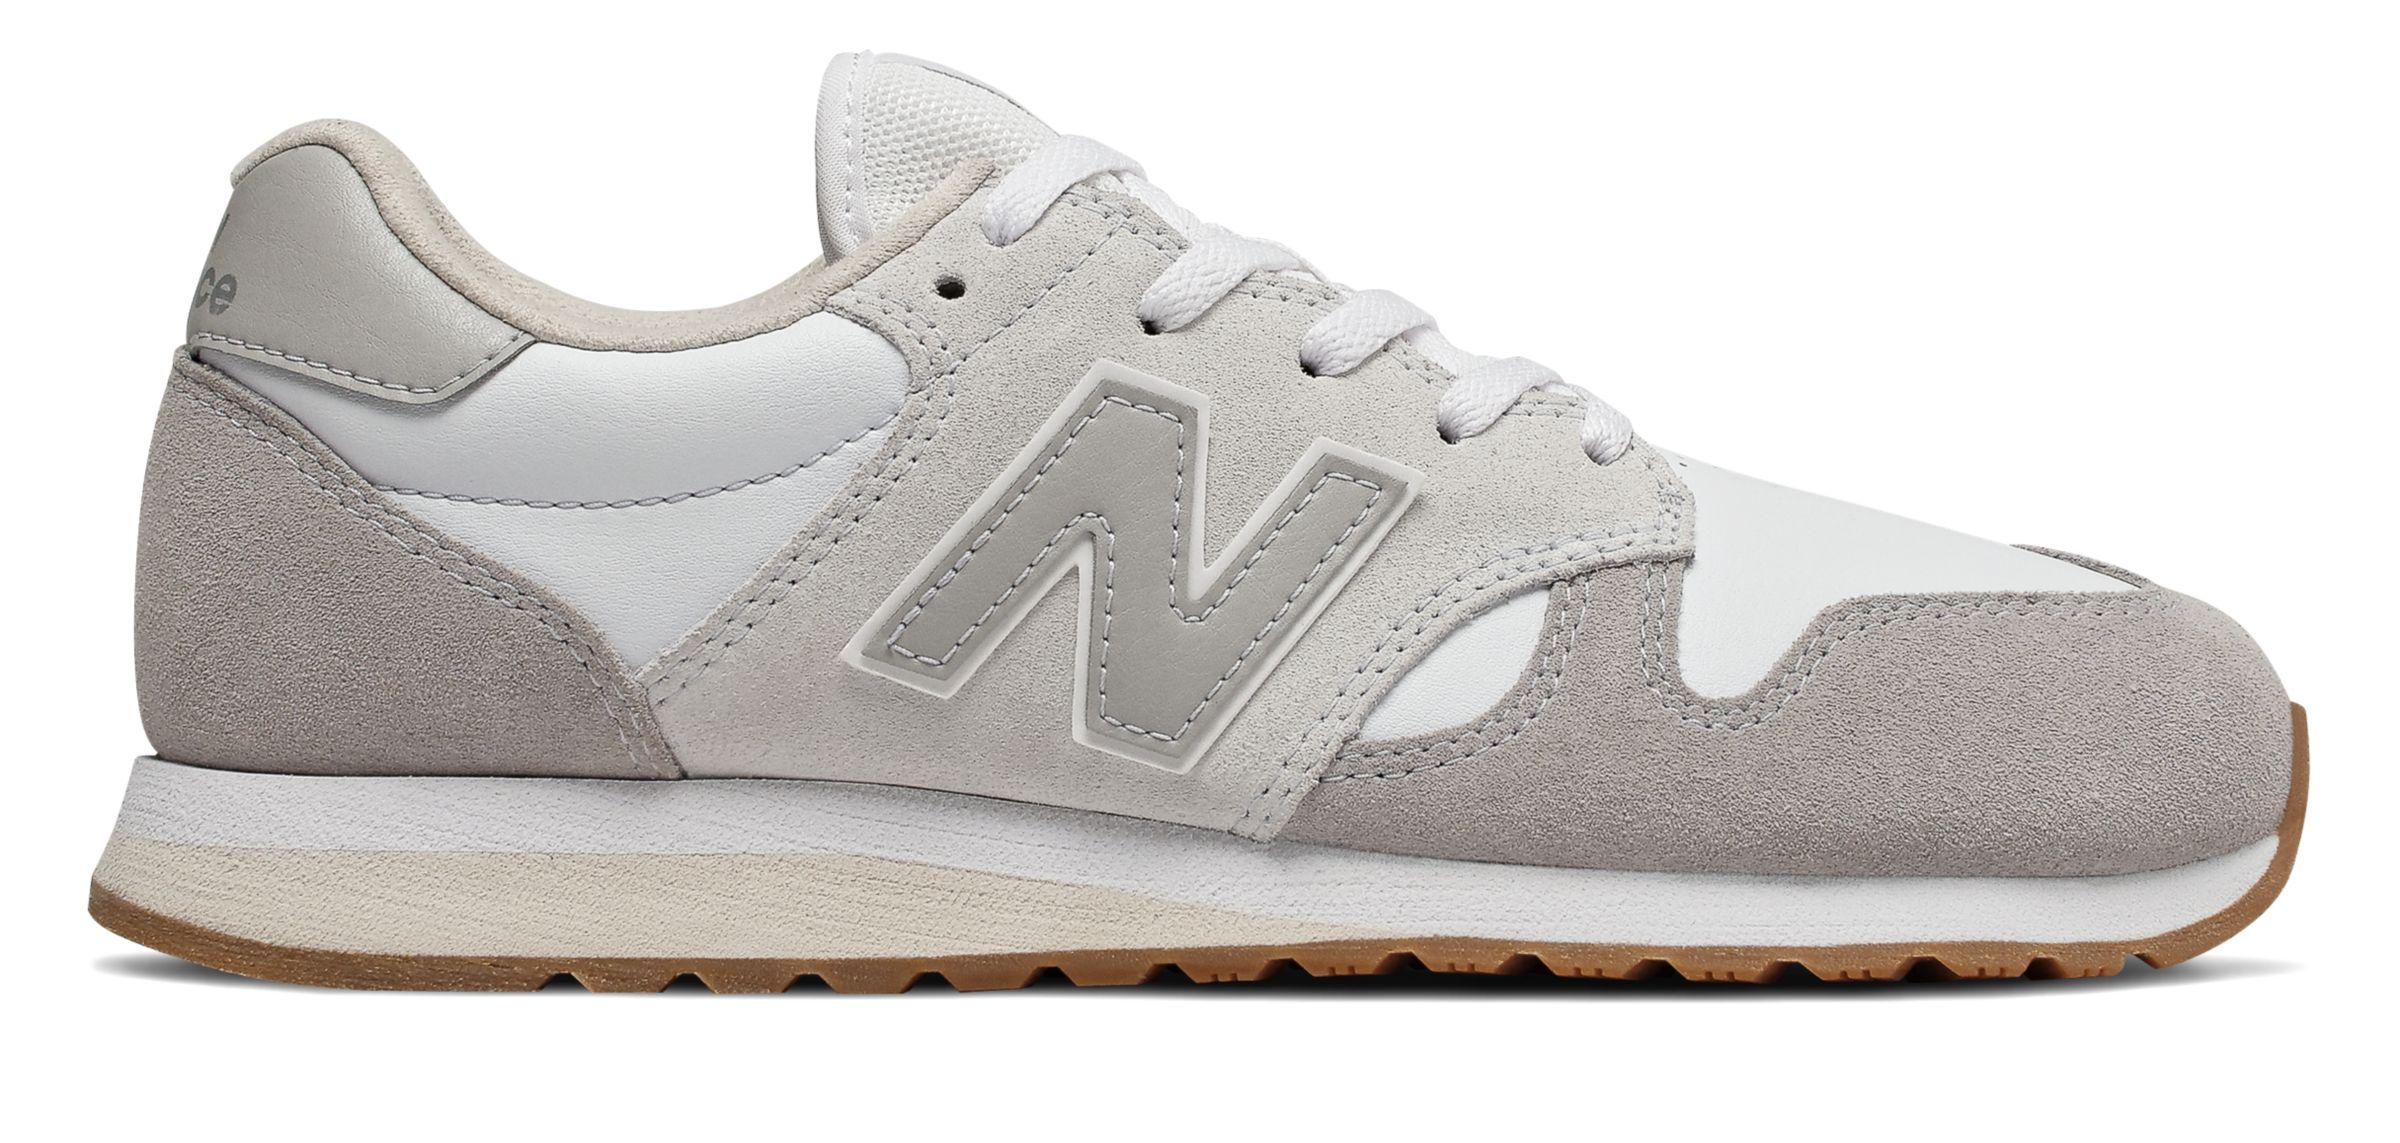 New Balance Suede 520 70's Running in